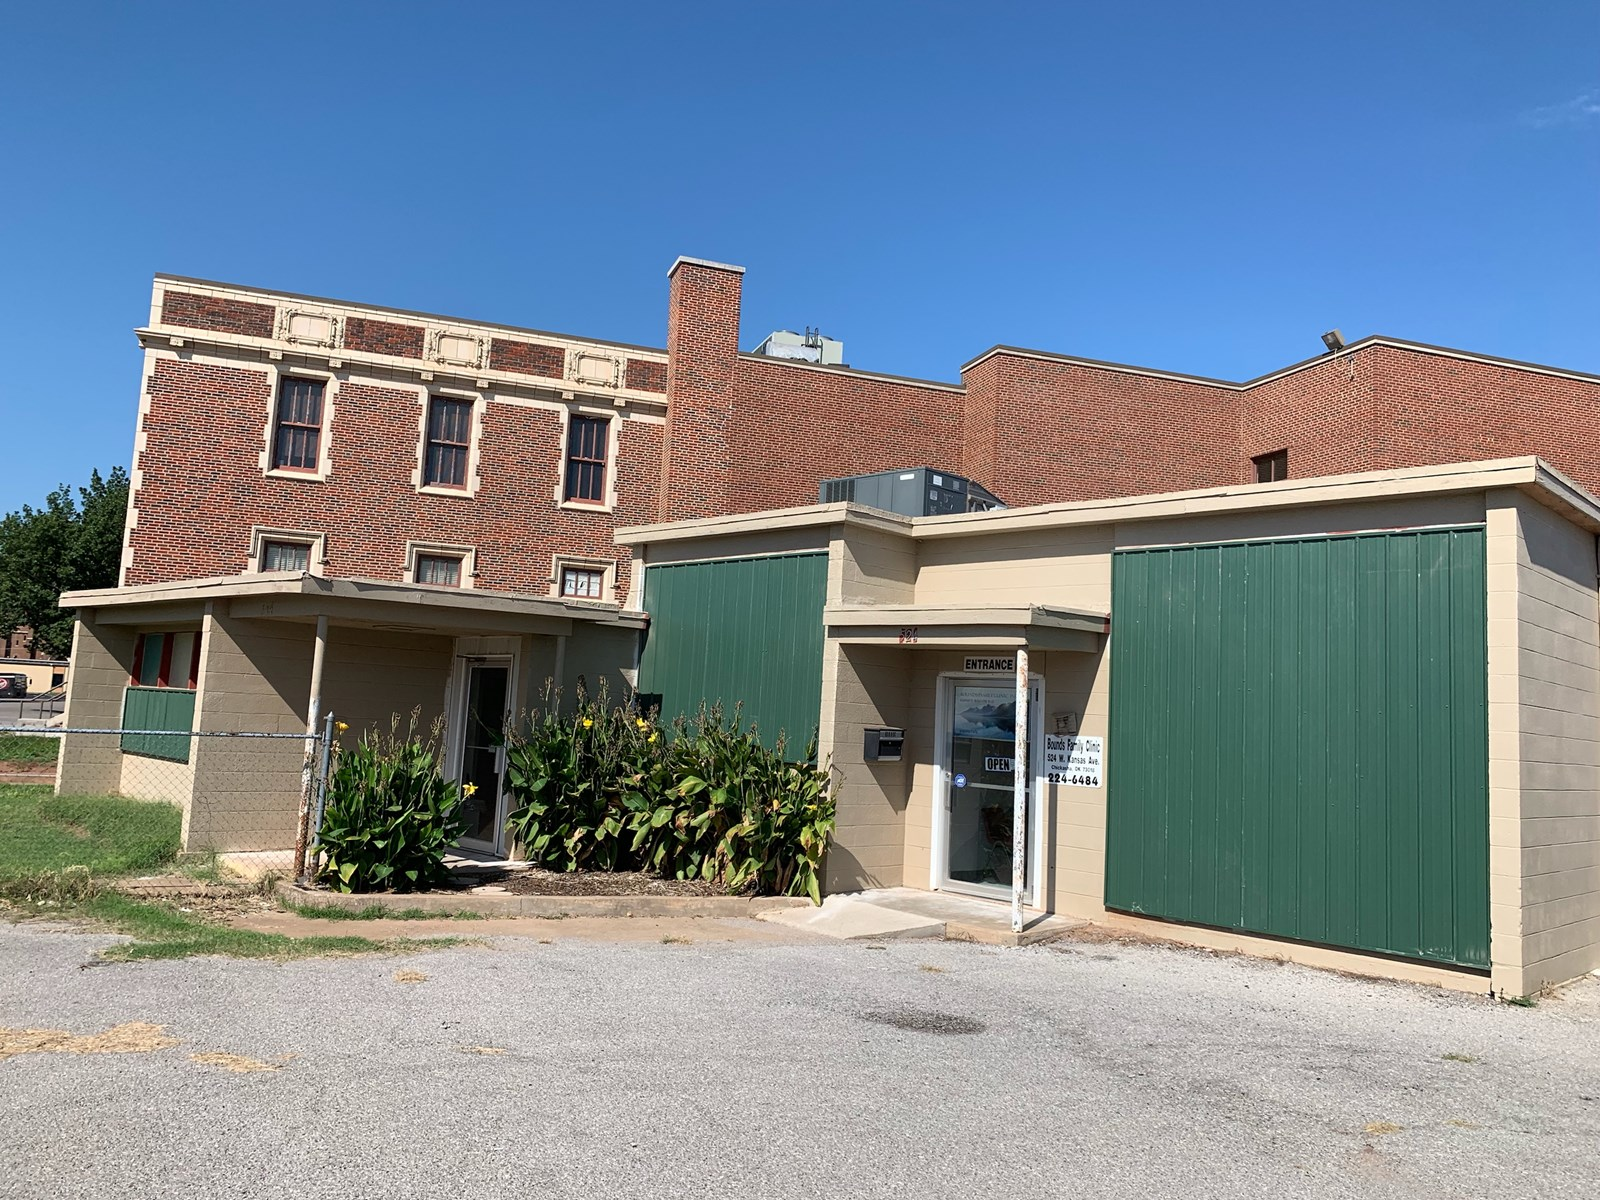 COMMERCIAL BUILDING FOR SALE CHICKASHA OKLAHOMA GRADY COUNTY